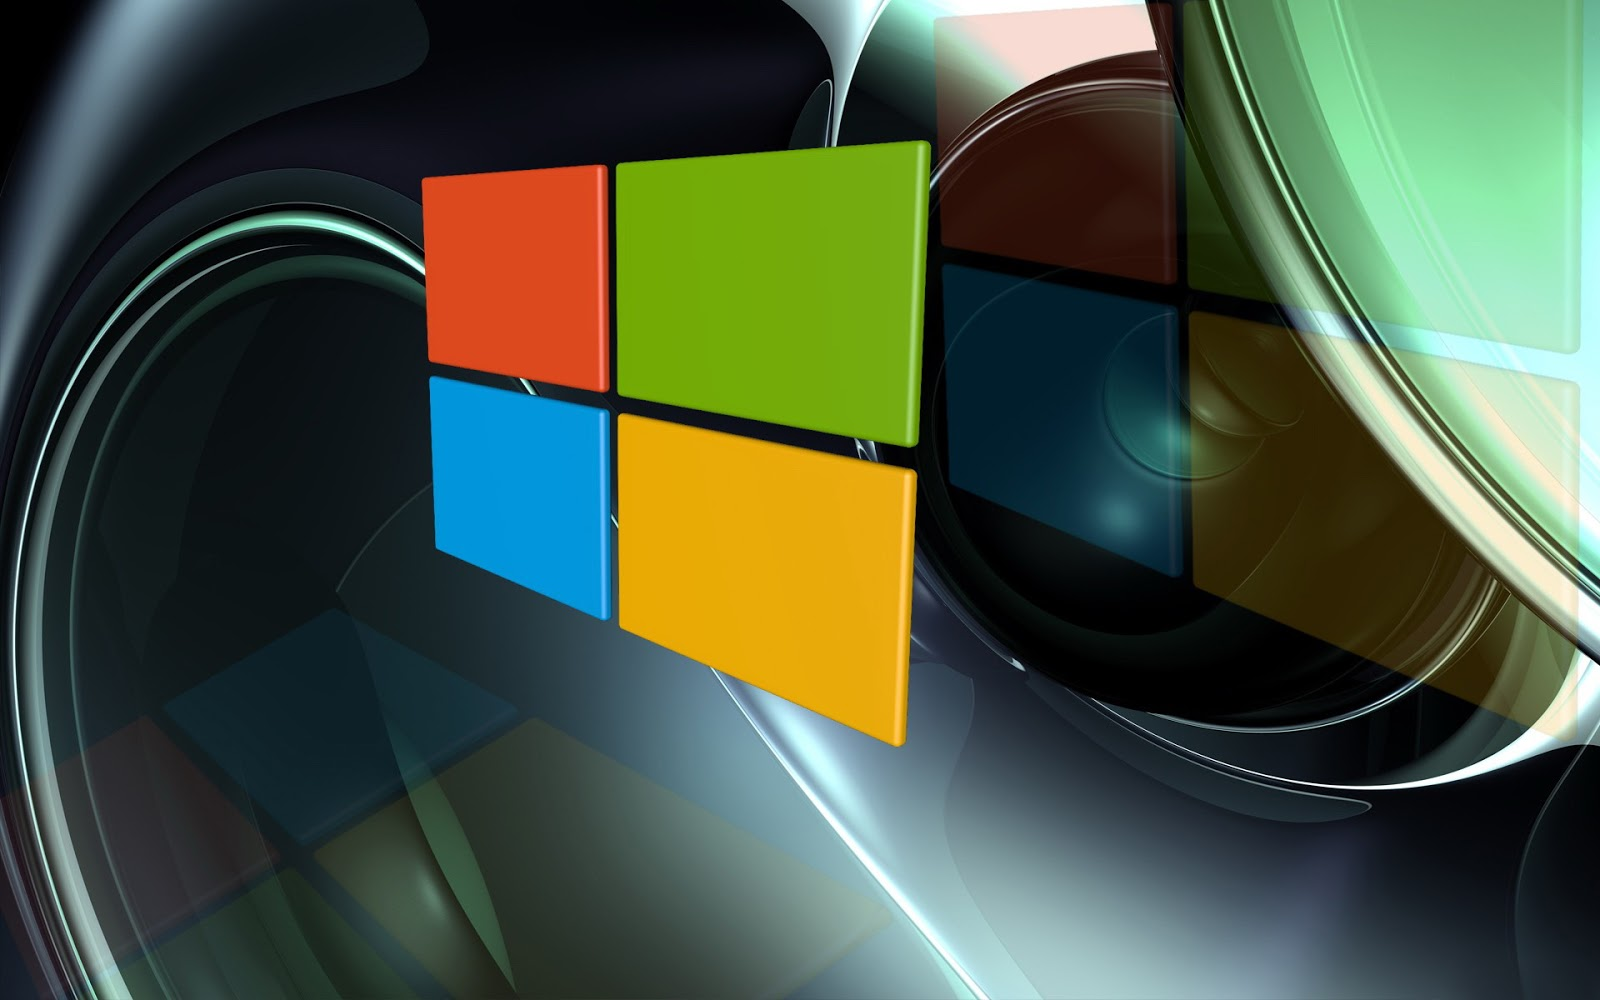 Desktop Hd Wallpapers 3d Windows Logos